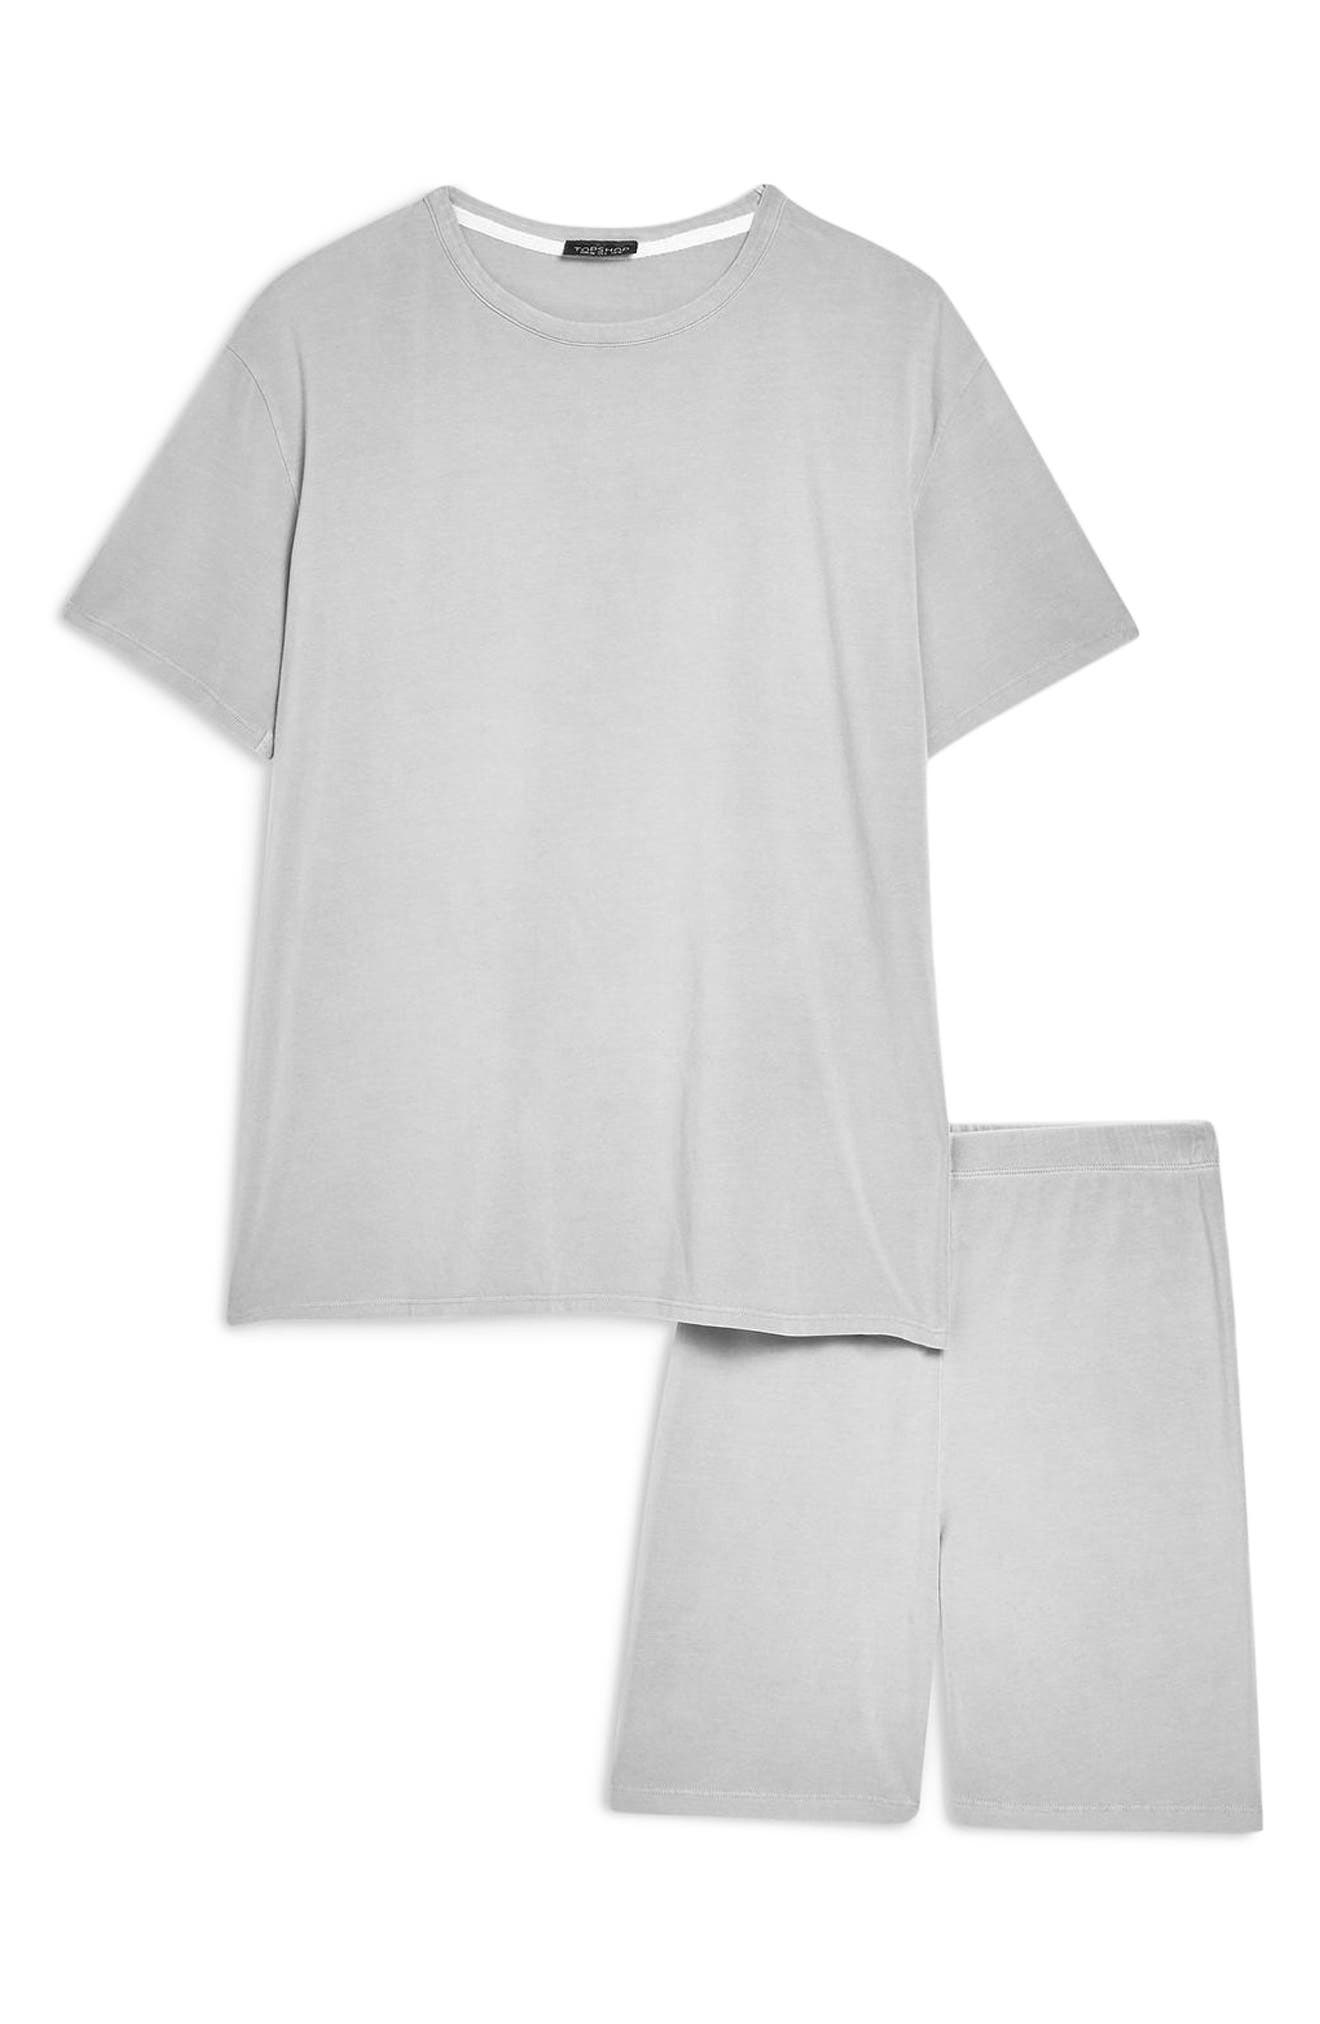 TOPSHOP, Washed Cycle Loungewear Set, Alternate thumbnail 3, color, STONE